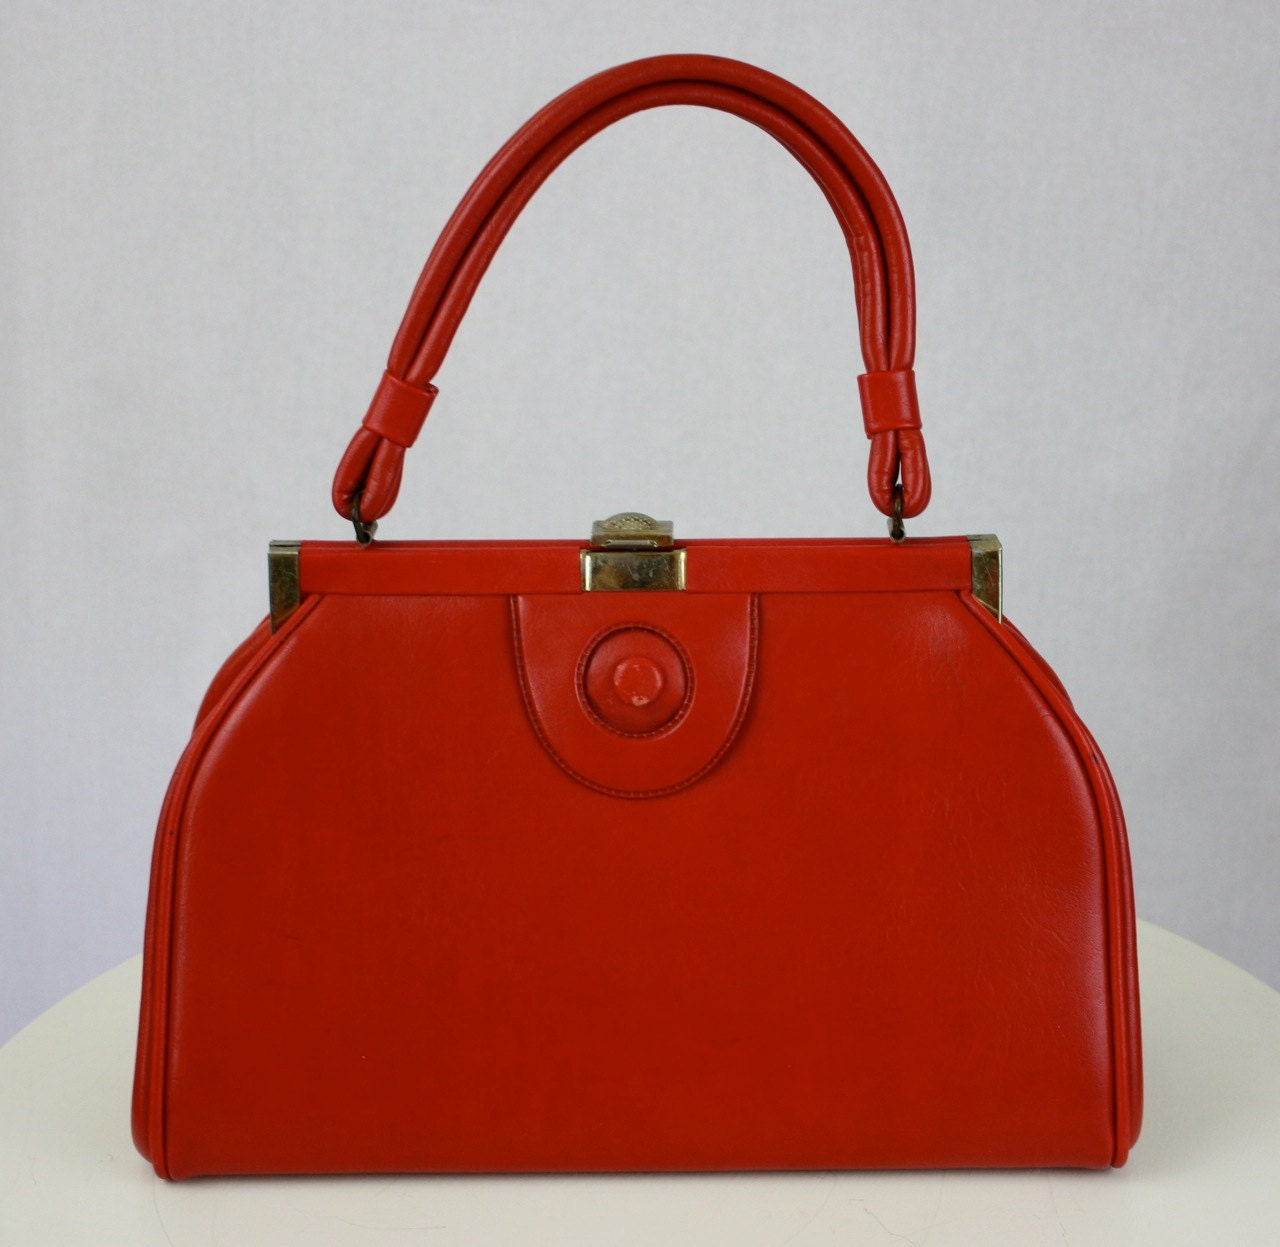 Vintage 1960s Red Purse Handbag Faux Leather w Brass Clasp - foreveracharm